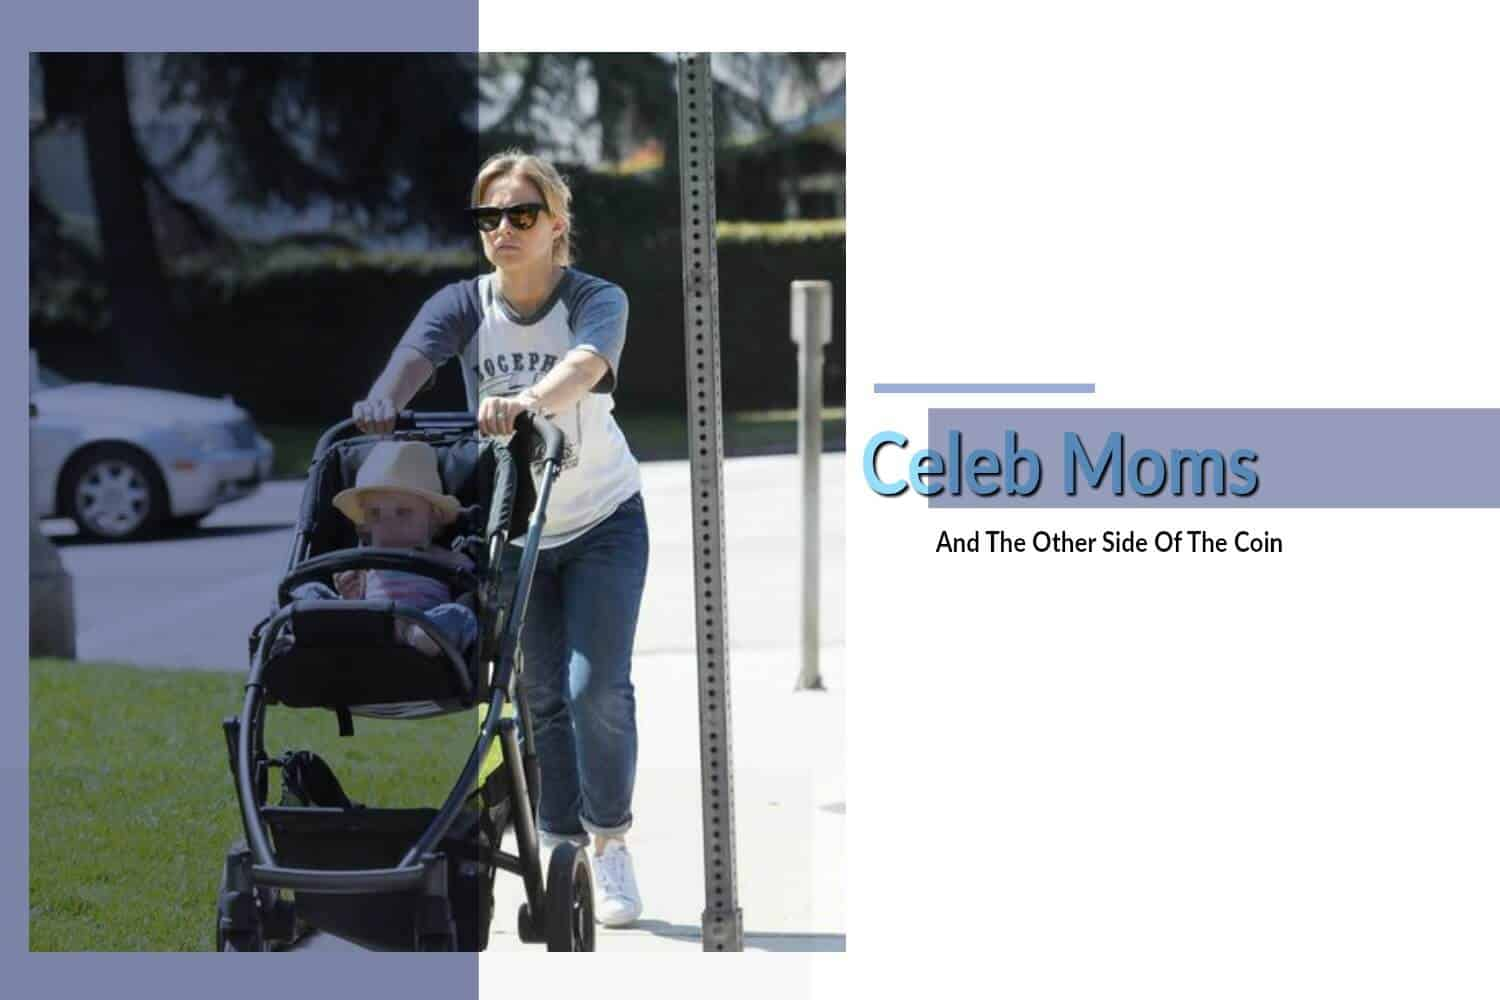 Celeb moms and the other side of the coin kirsten